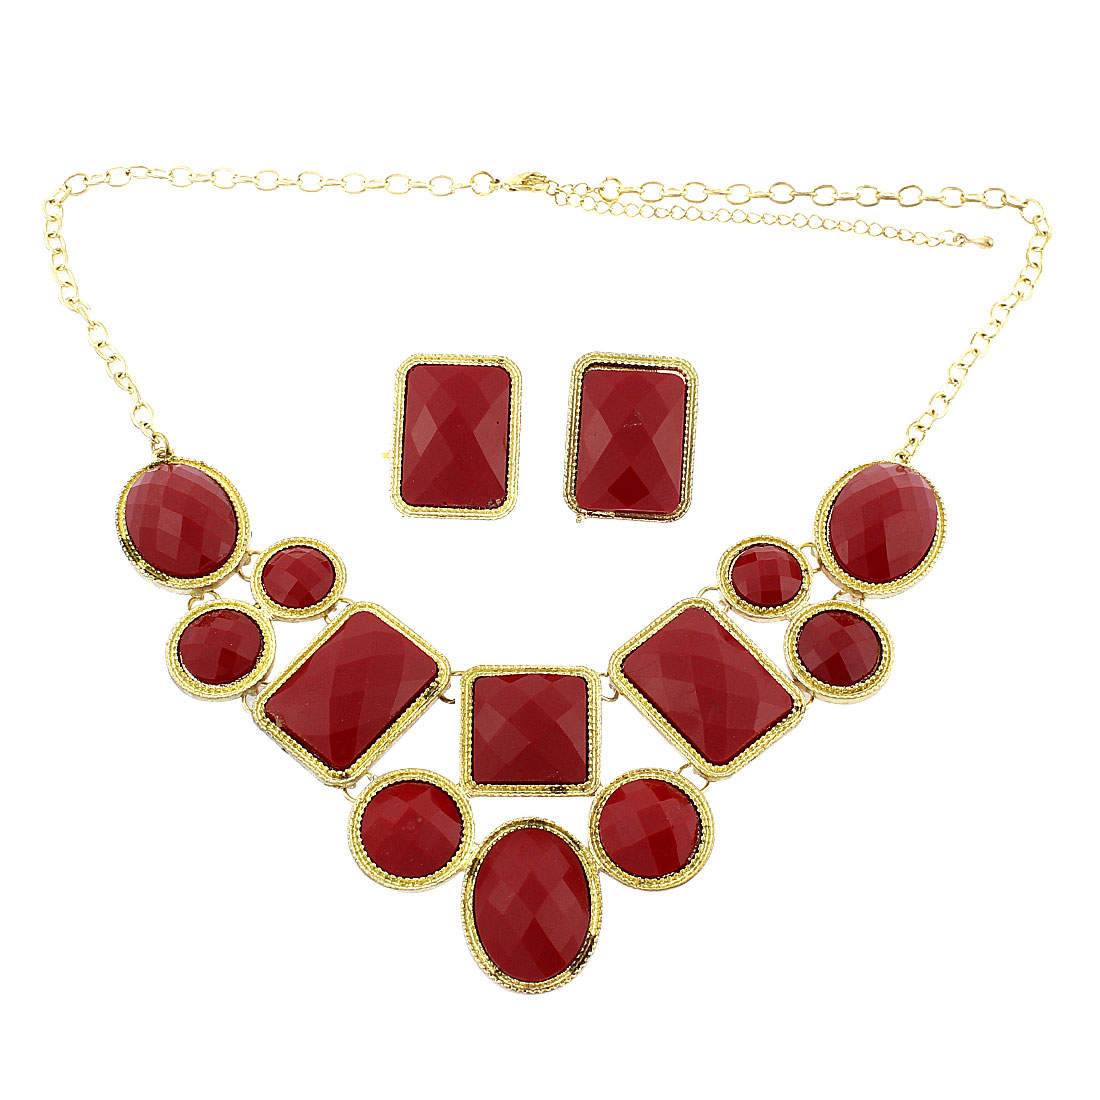 Red Faceted Faux Crystal Pendant Chain Necklace Earring Set Jewelry